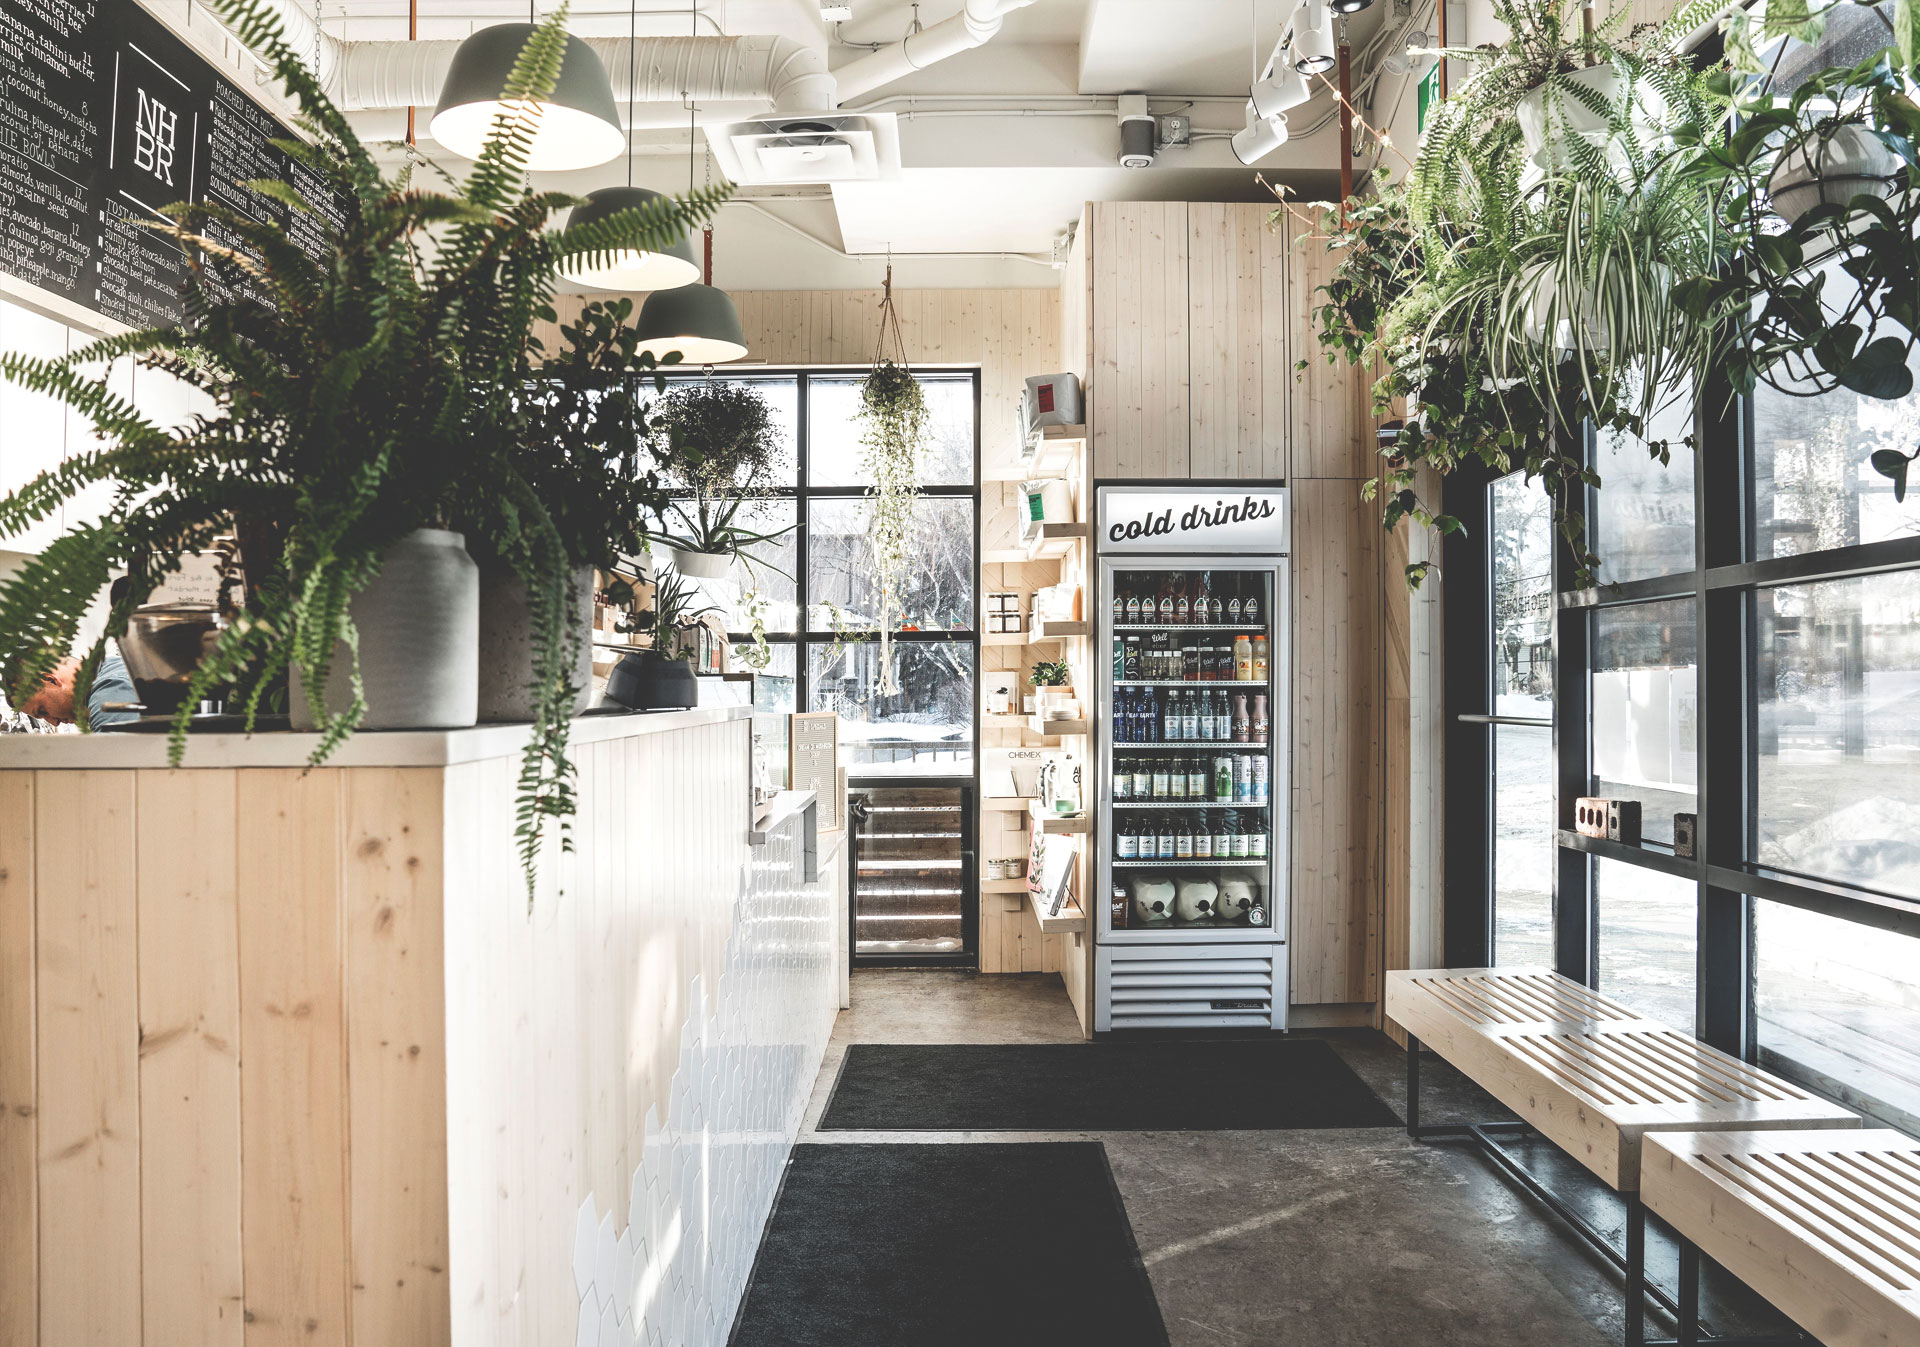 Get breakfast on the go at Neighbour Coffee.